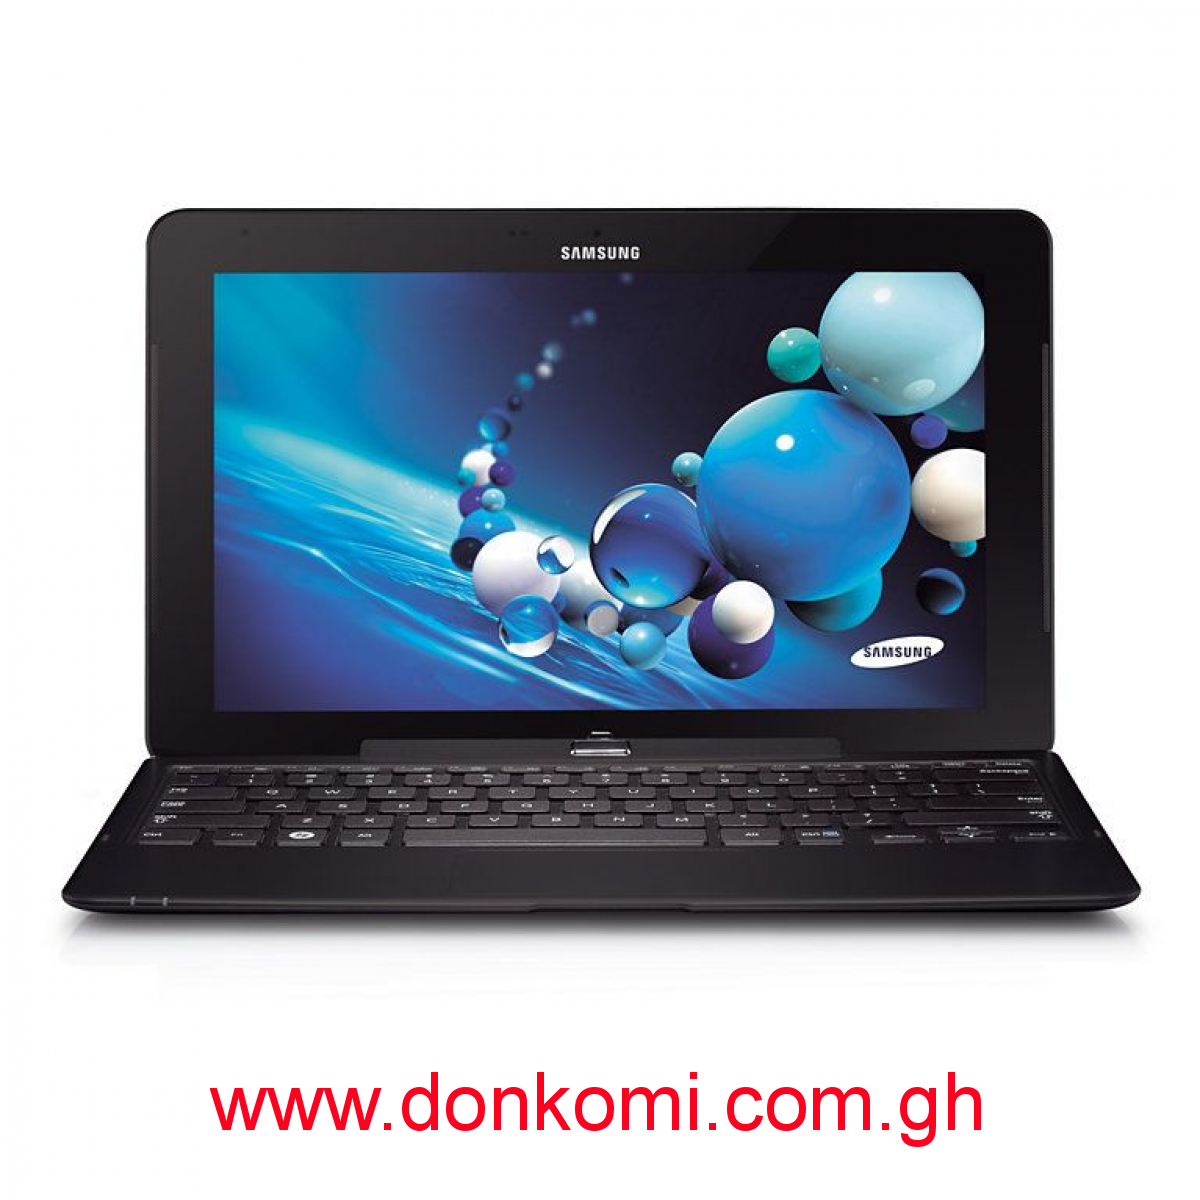 SAMSUNG 700TIC DETACHABLE LAPTOP